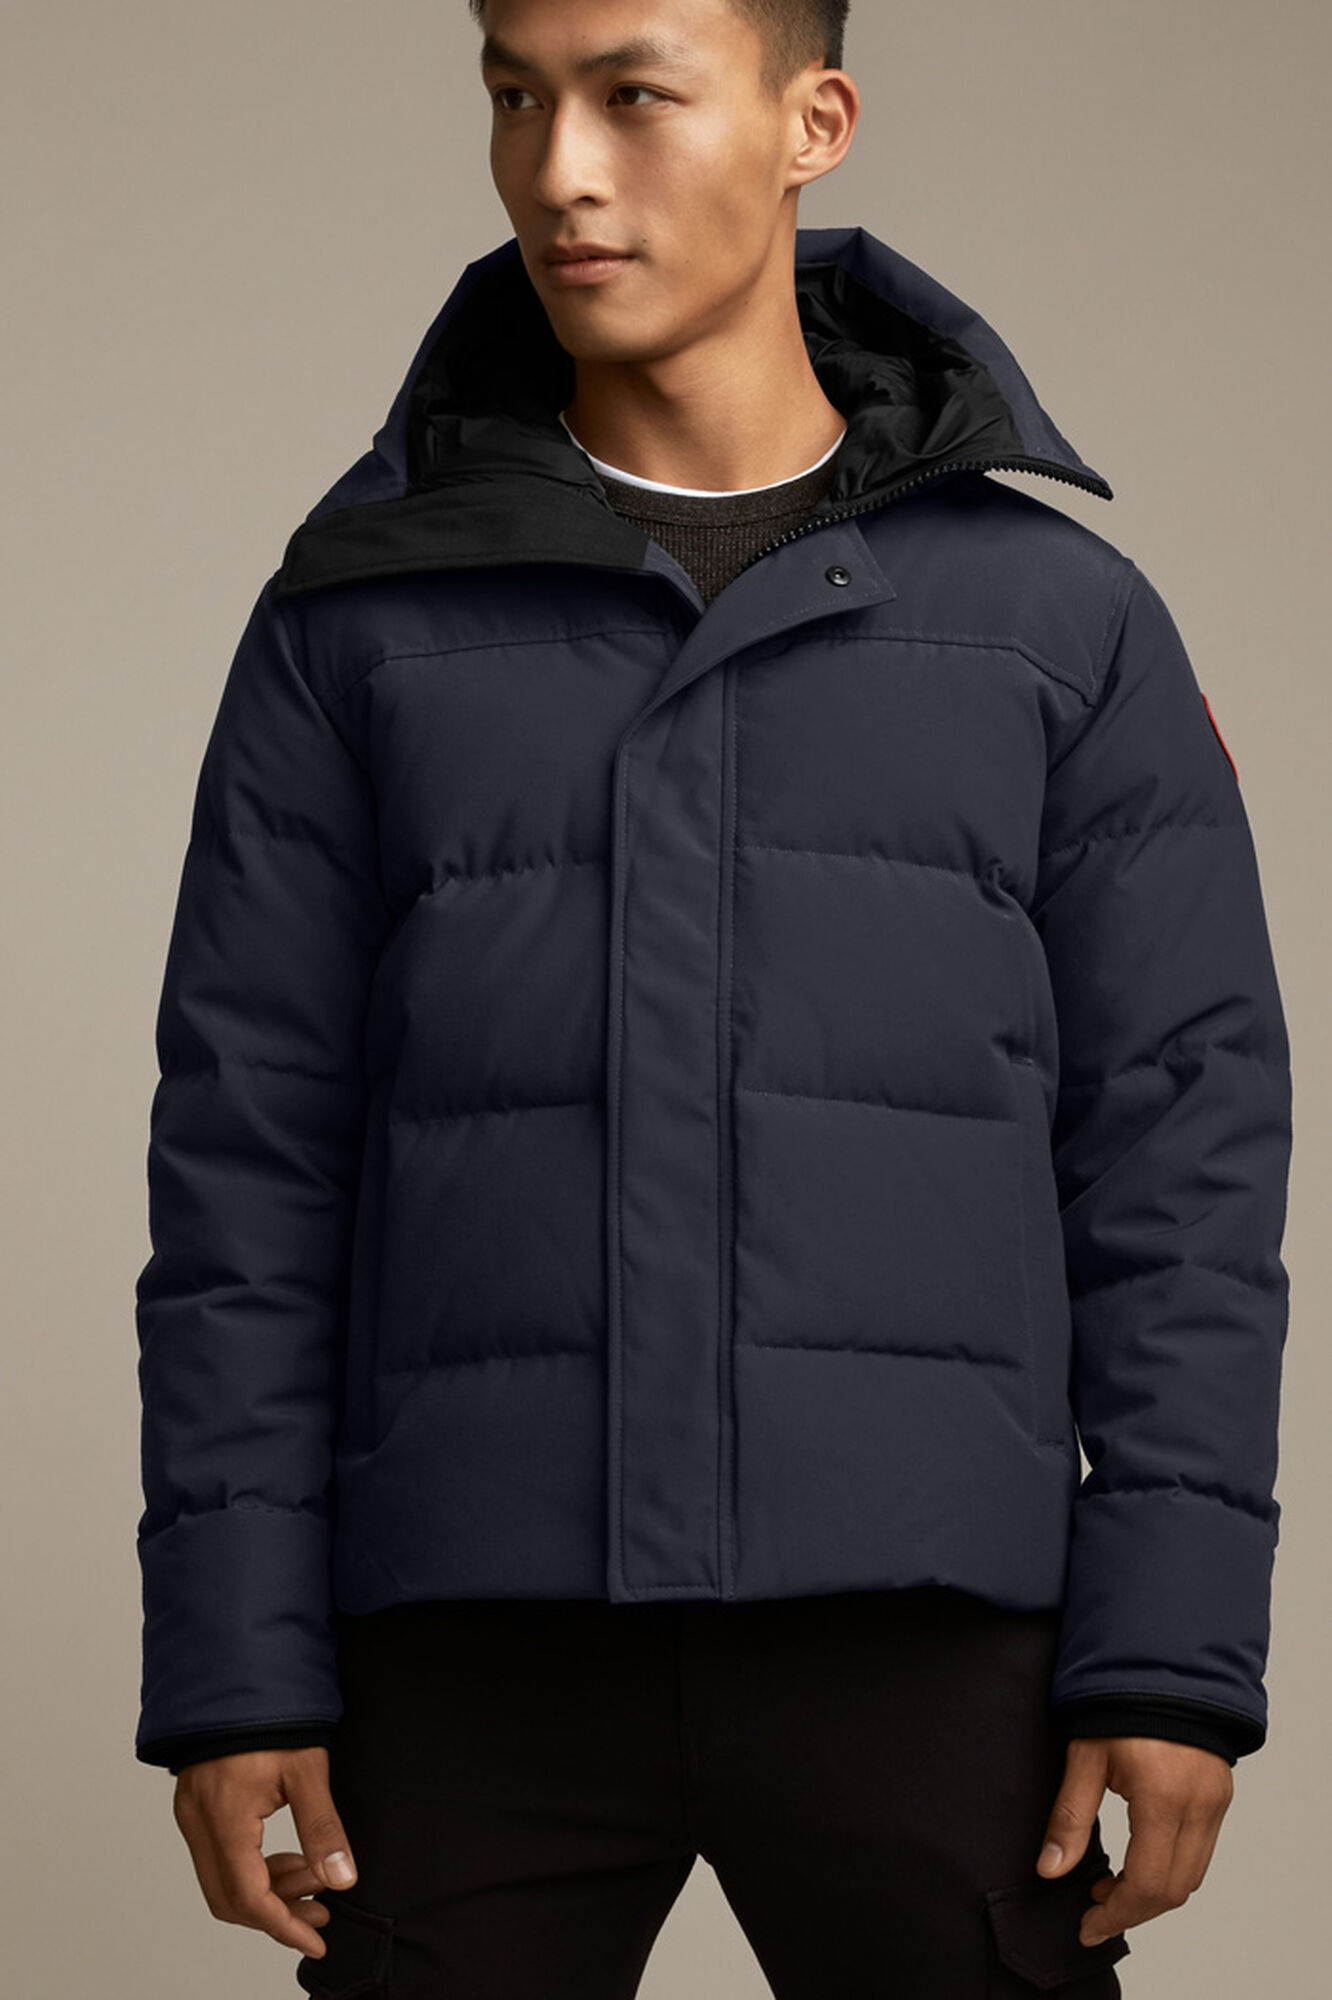 Canada Goose montebello parka online price - Mens Extreme Weather Outerwear | Canada Goose?